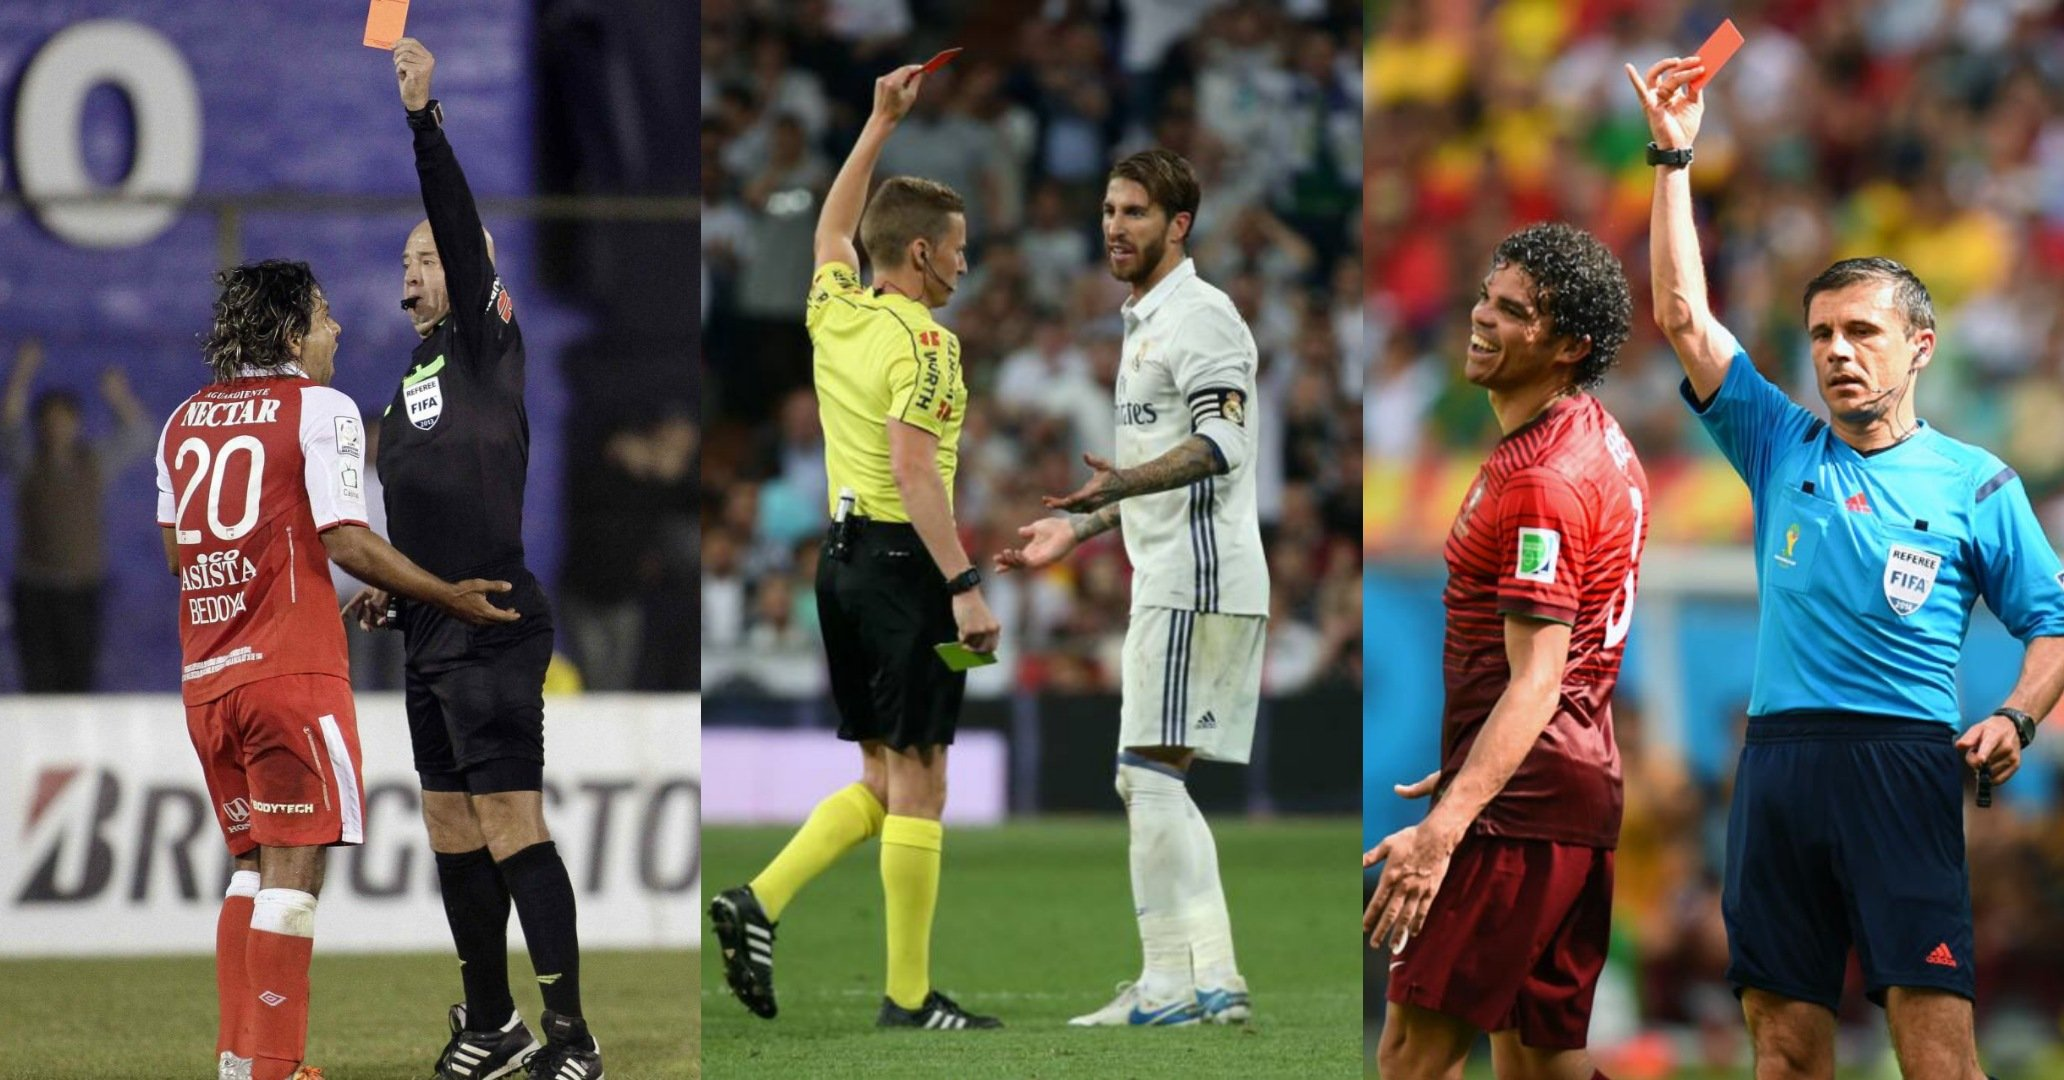 Footballer with most red cards